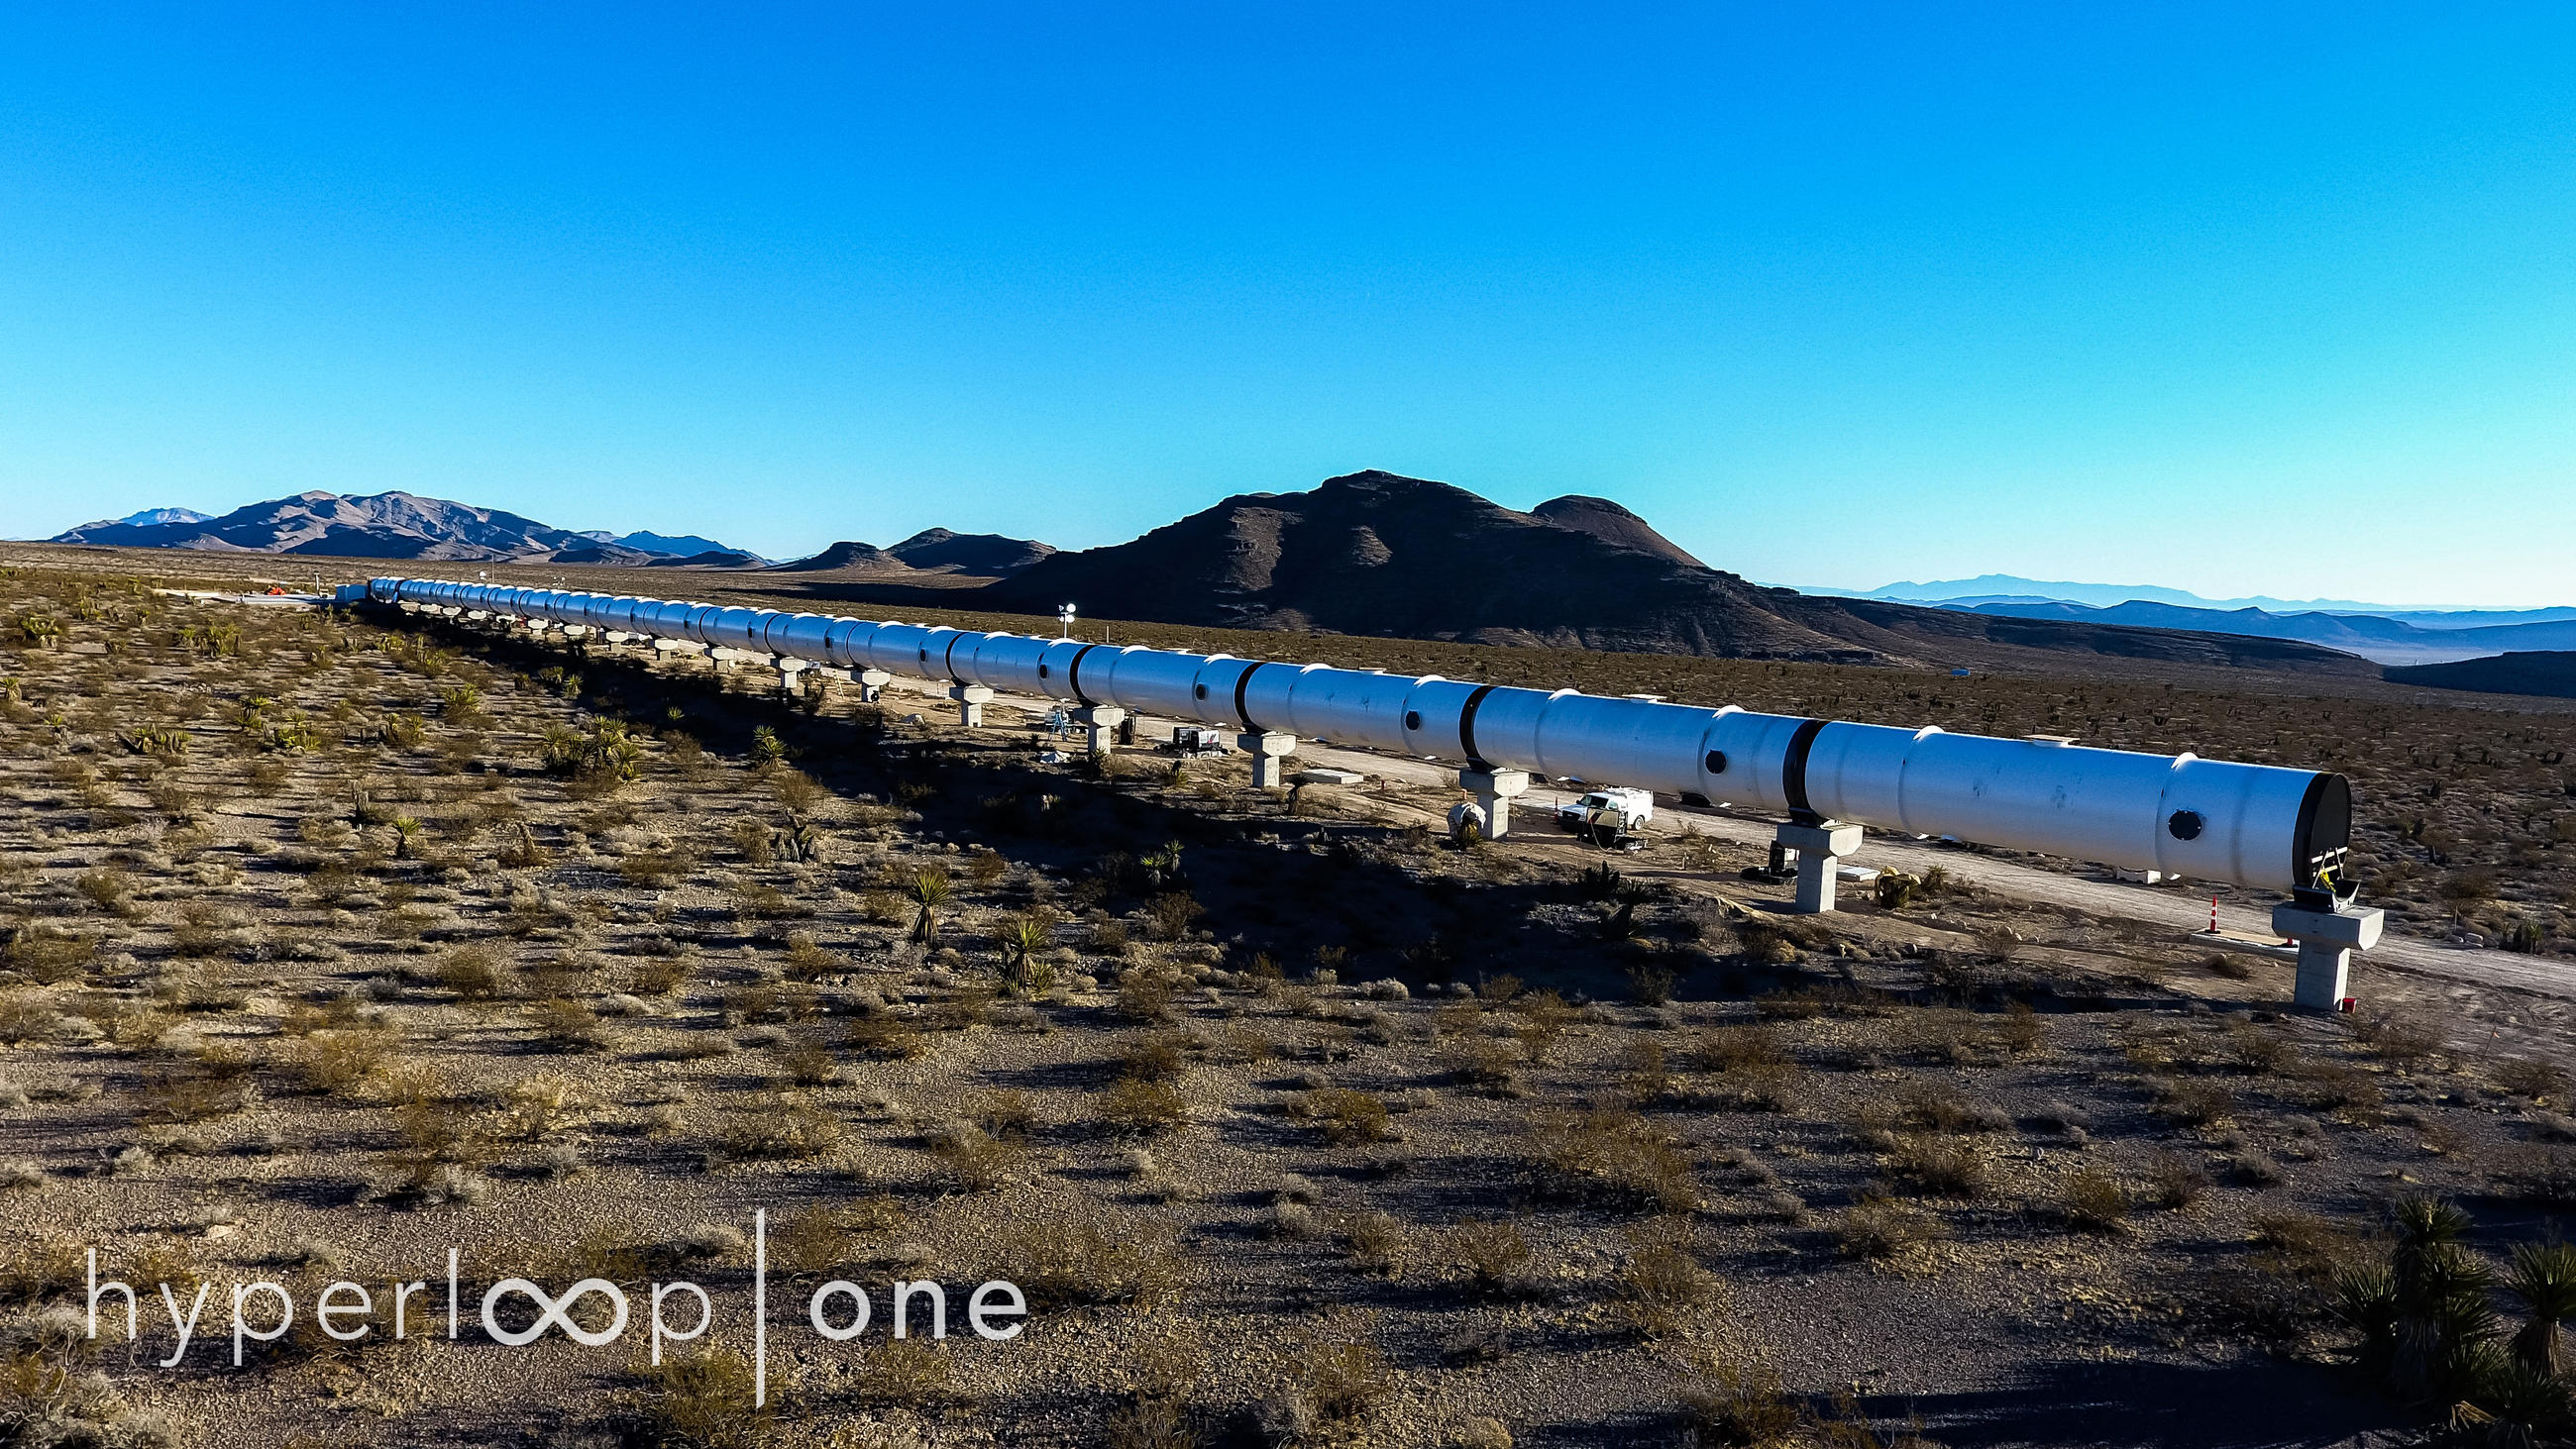 hyperloop-one-test-track-nevada-5